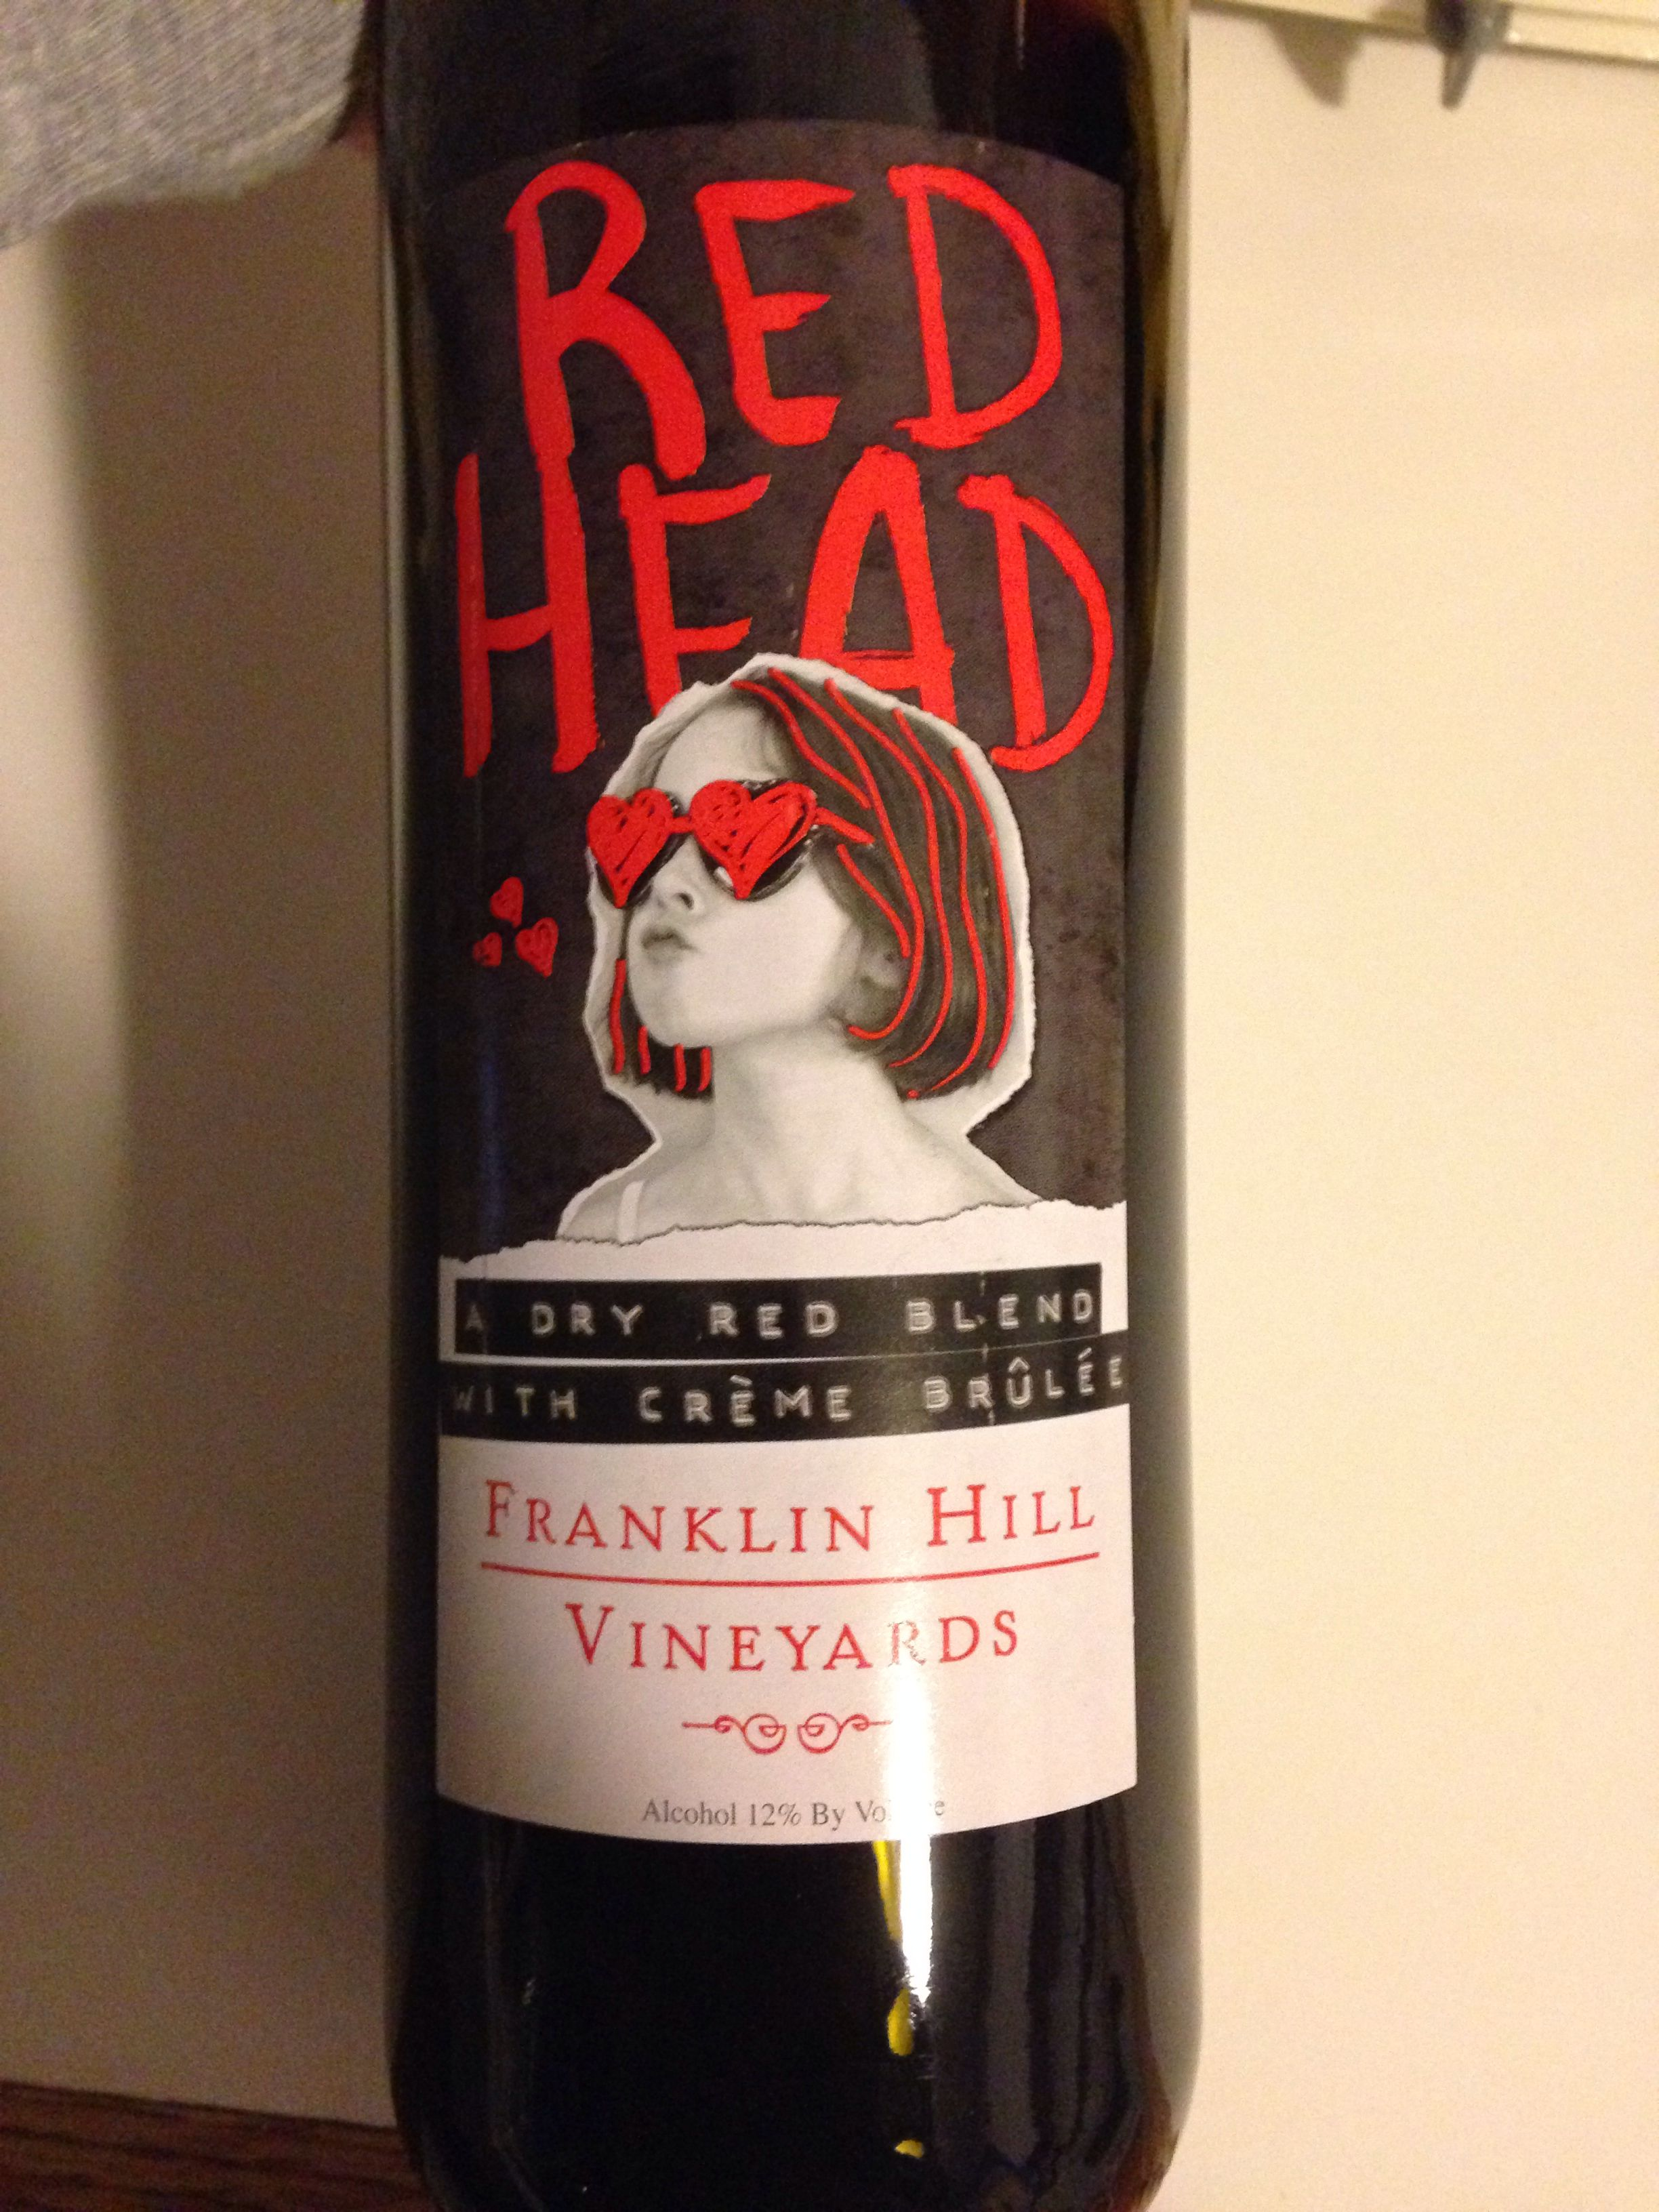 A Dry Red Blend With Creme Brulee Red Head Franklin Hill Vineyards Pa Wines Wine Bottle Red